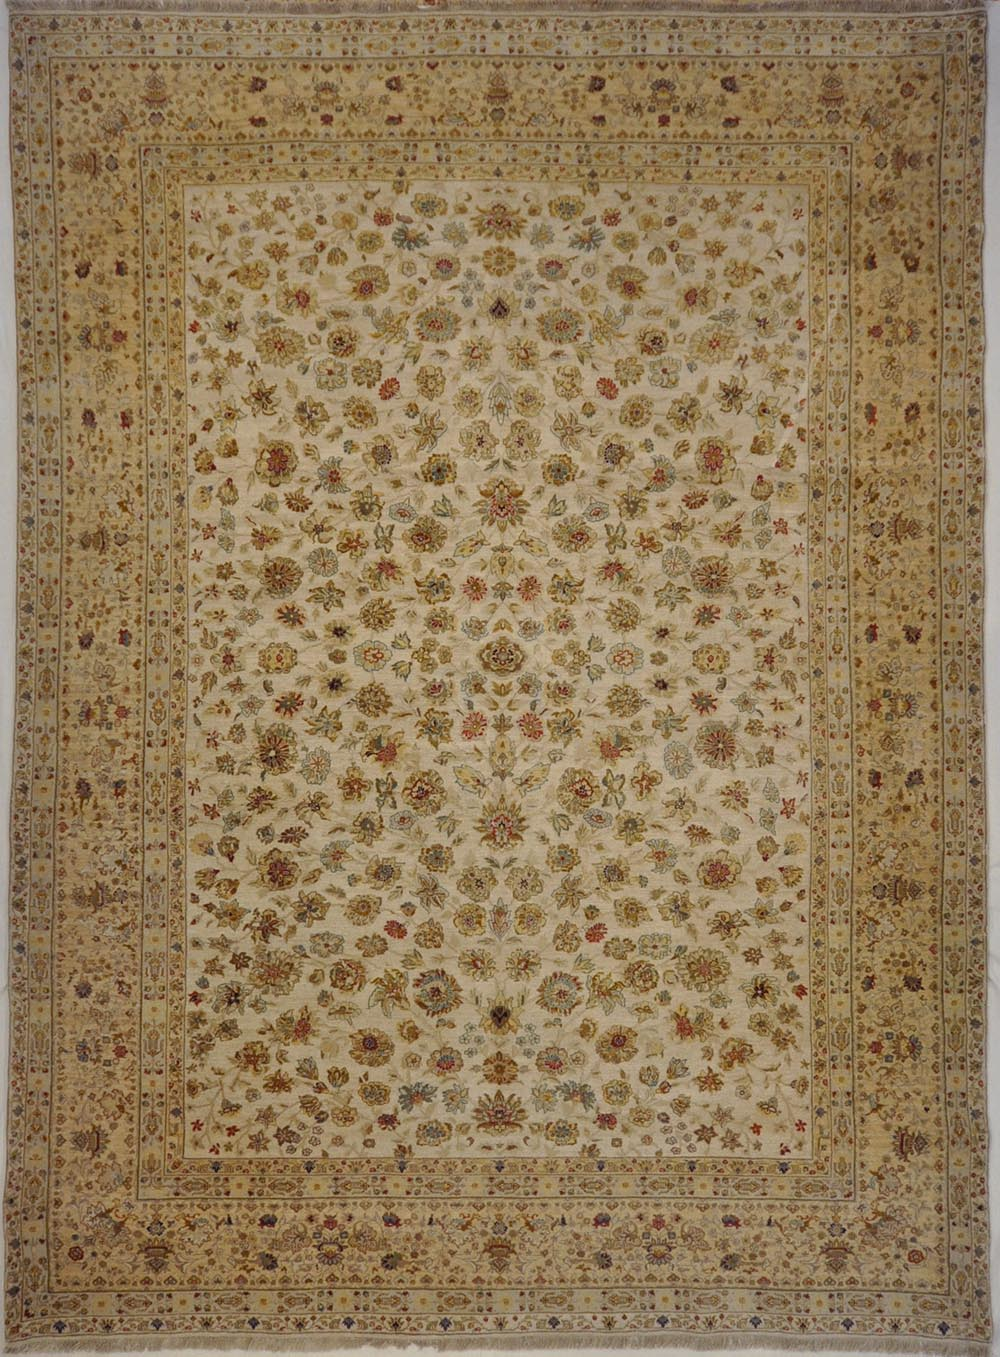 Finest mughal agra rugs and more oriental carpet 43555-1